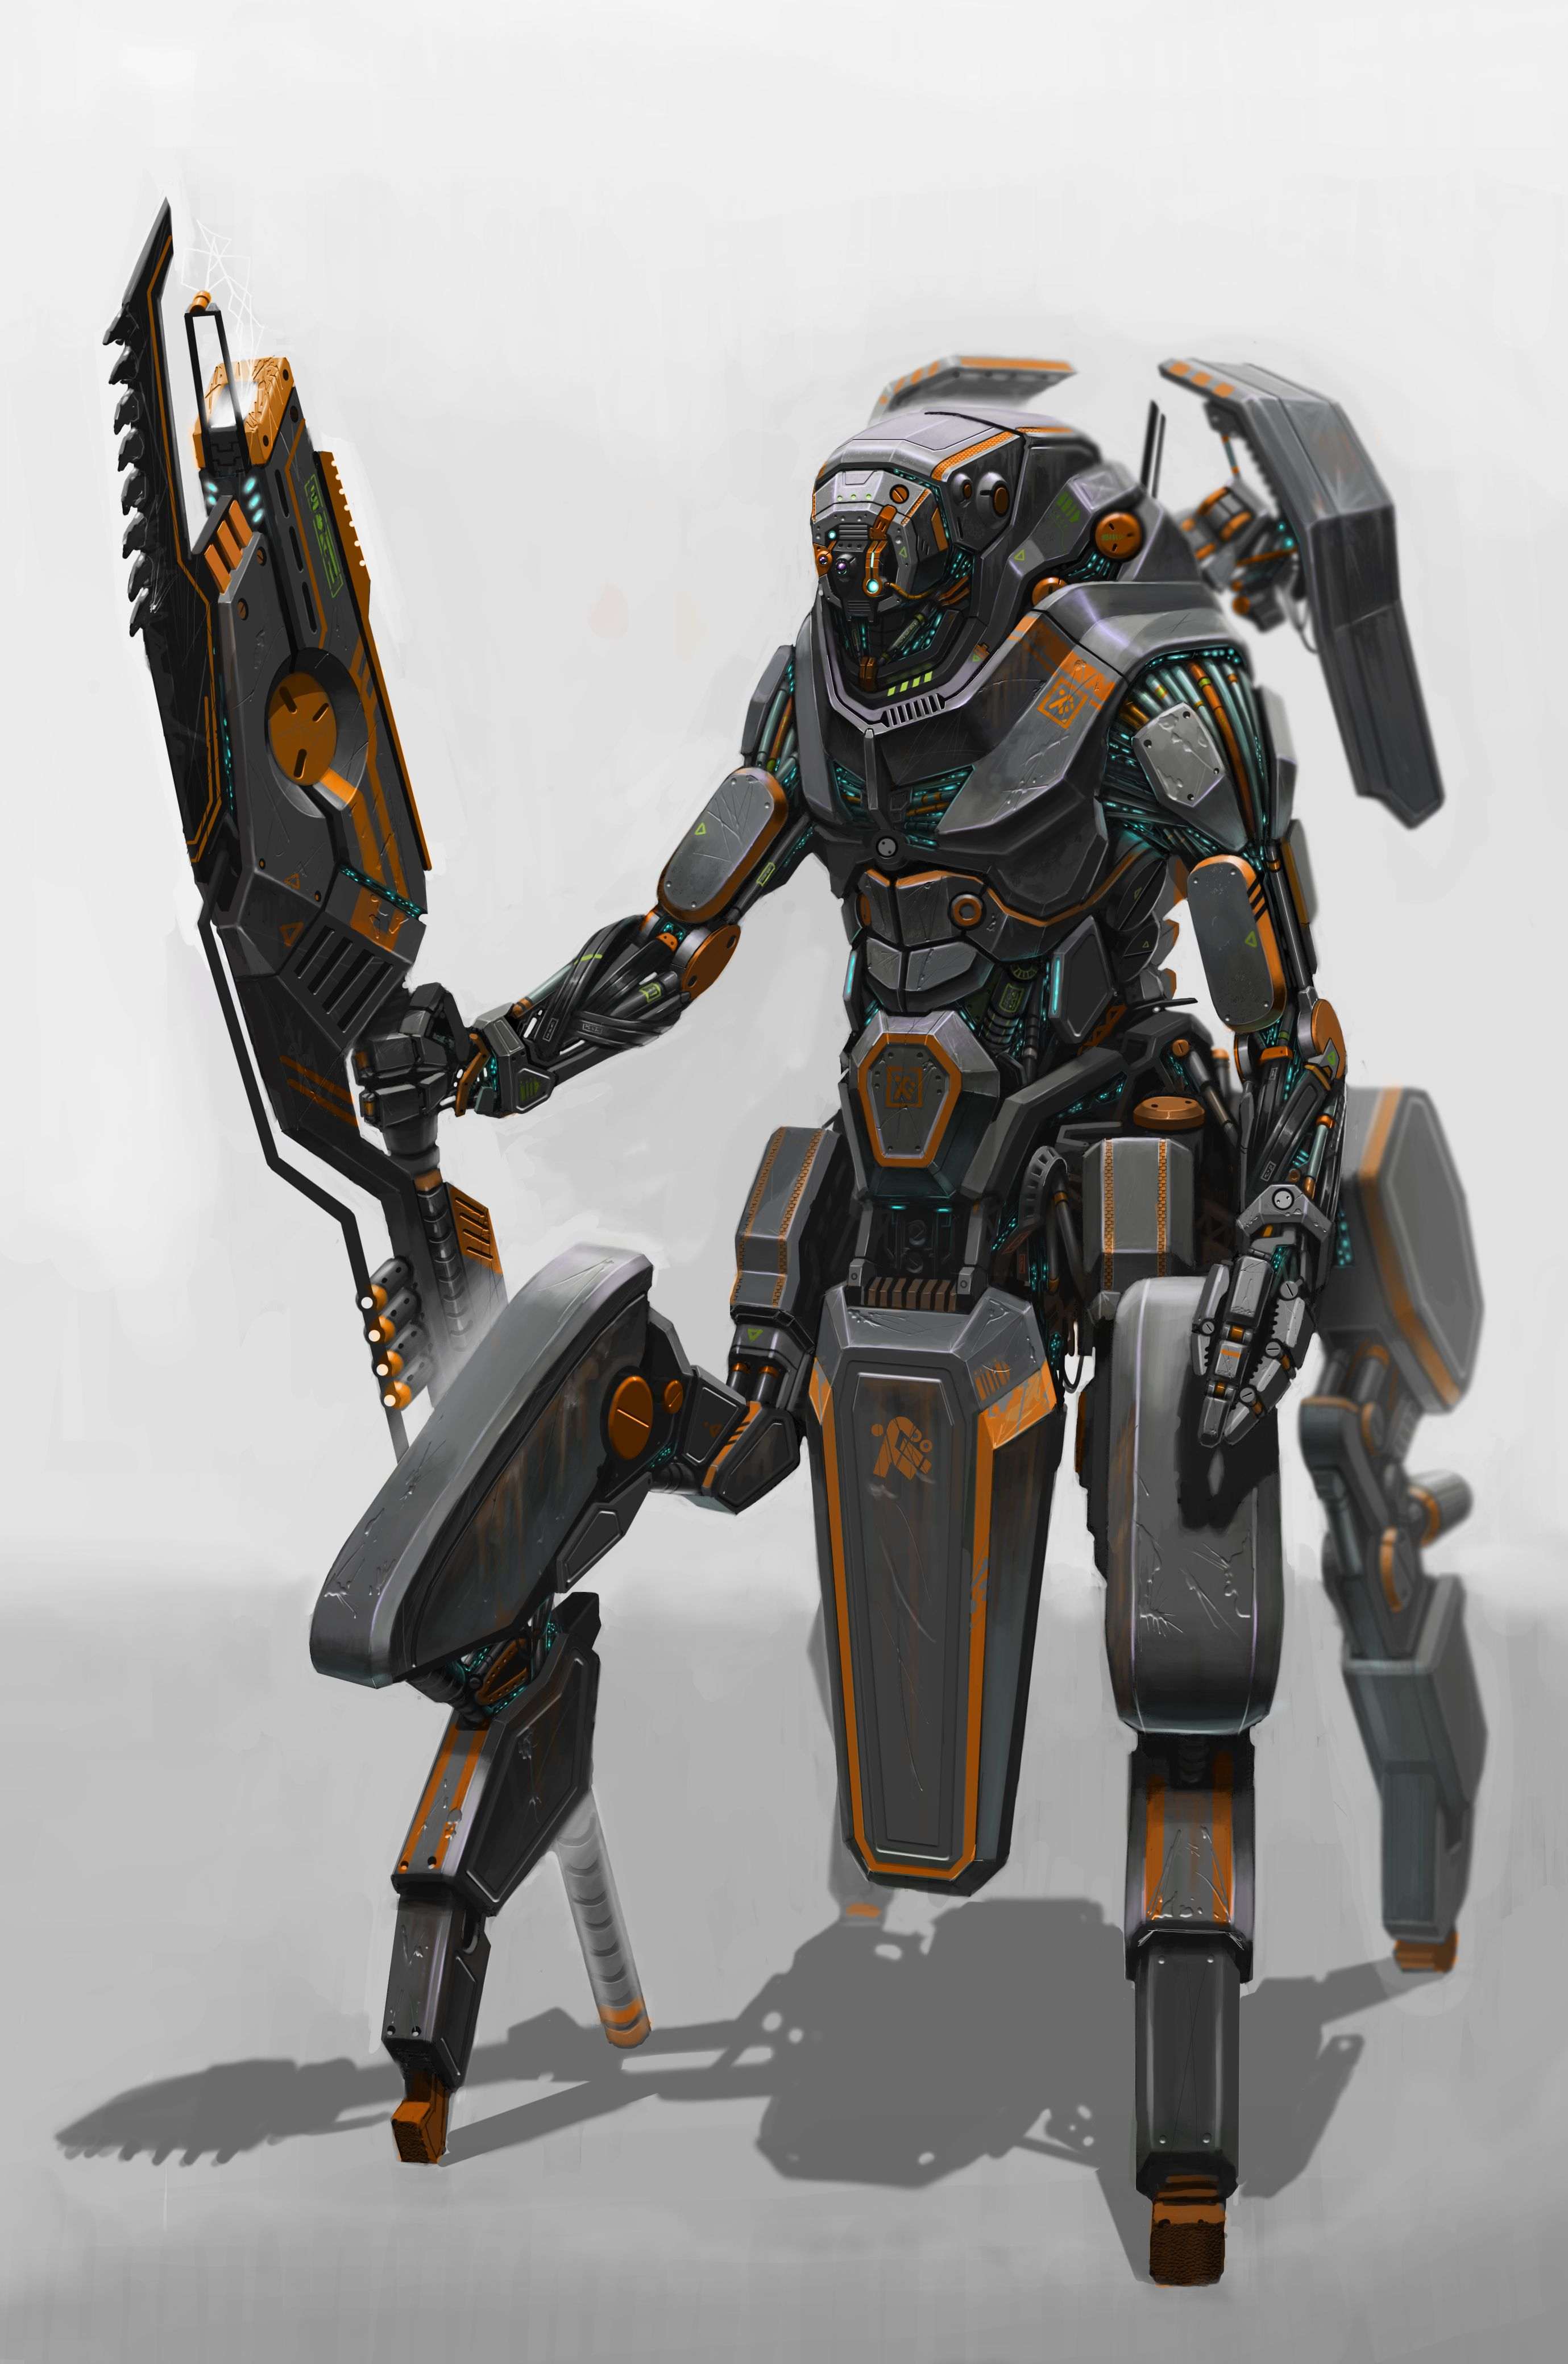 Pin By Jay Oh On Mech In 2019 Robot Concept Art